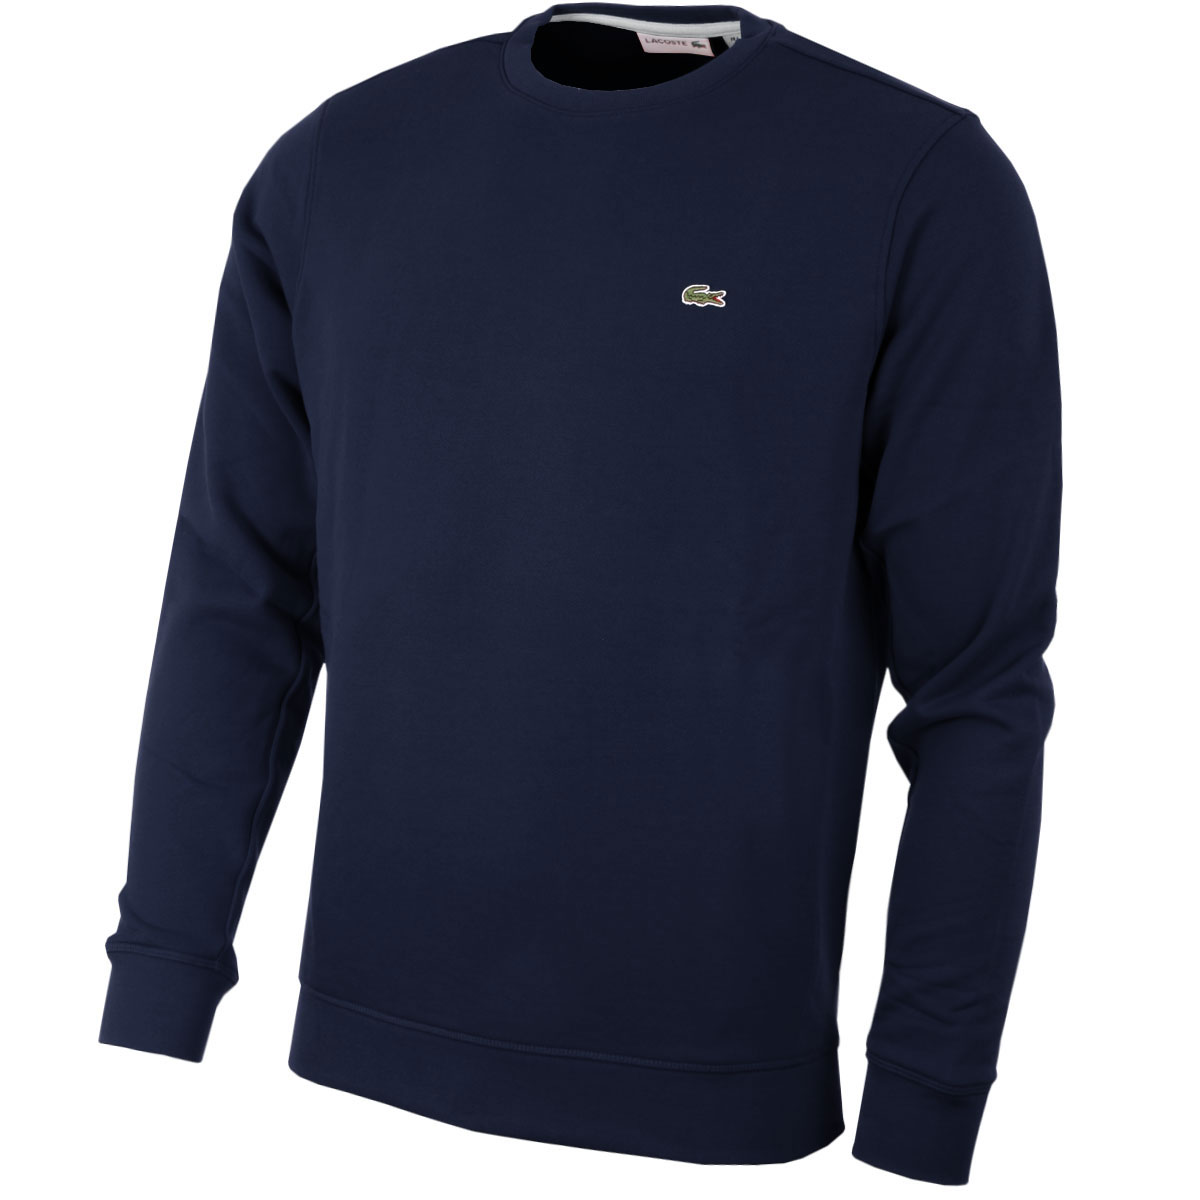 lacoste 2016 mens sh6619 crew neck sweatshirt jumper pullover sweater top. Black Bedroom Furniture Sets. Home Design Ideas